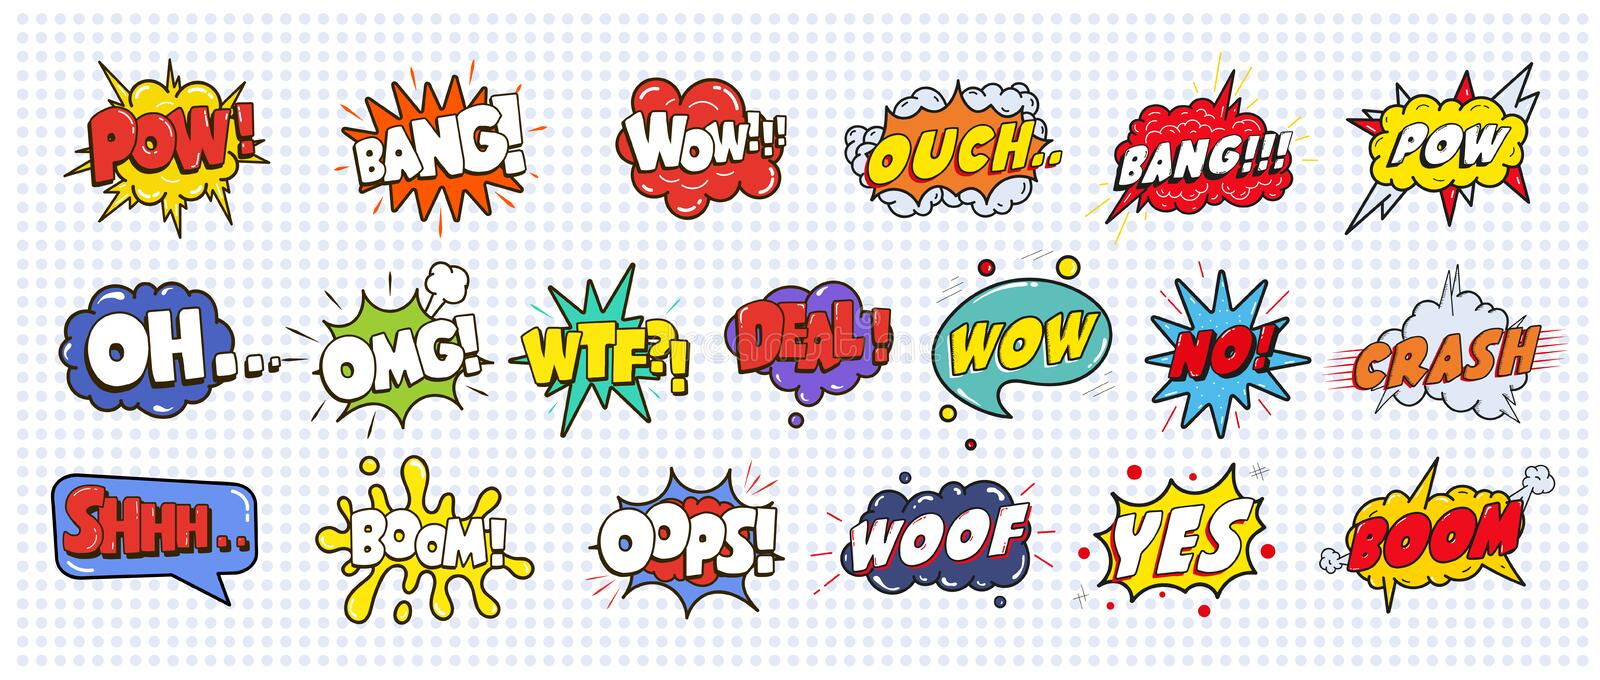 Comic sound speech effect bubbles set on white background illustration. Wow, pow, bang, ouch, crash, woof, no vector illustration